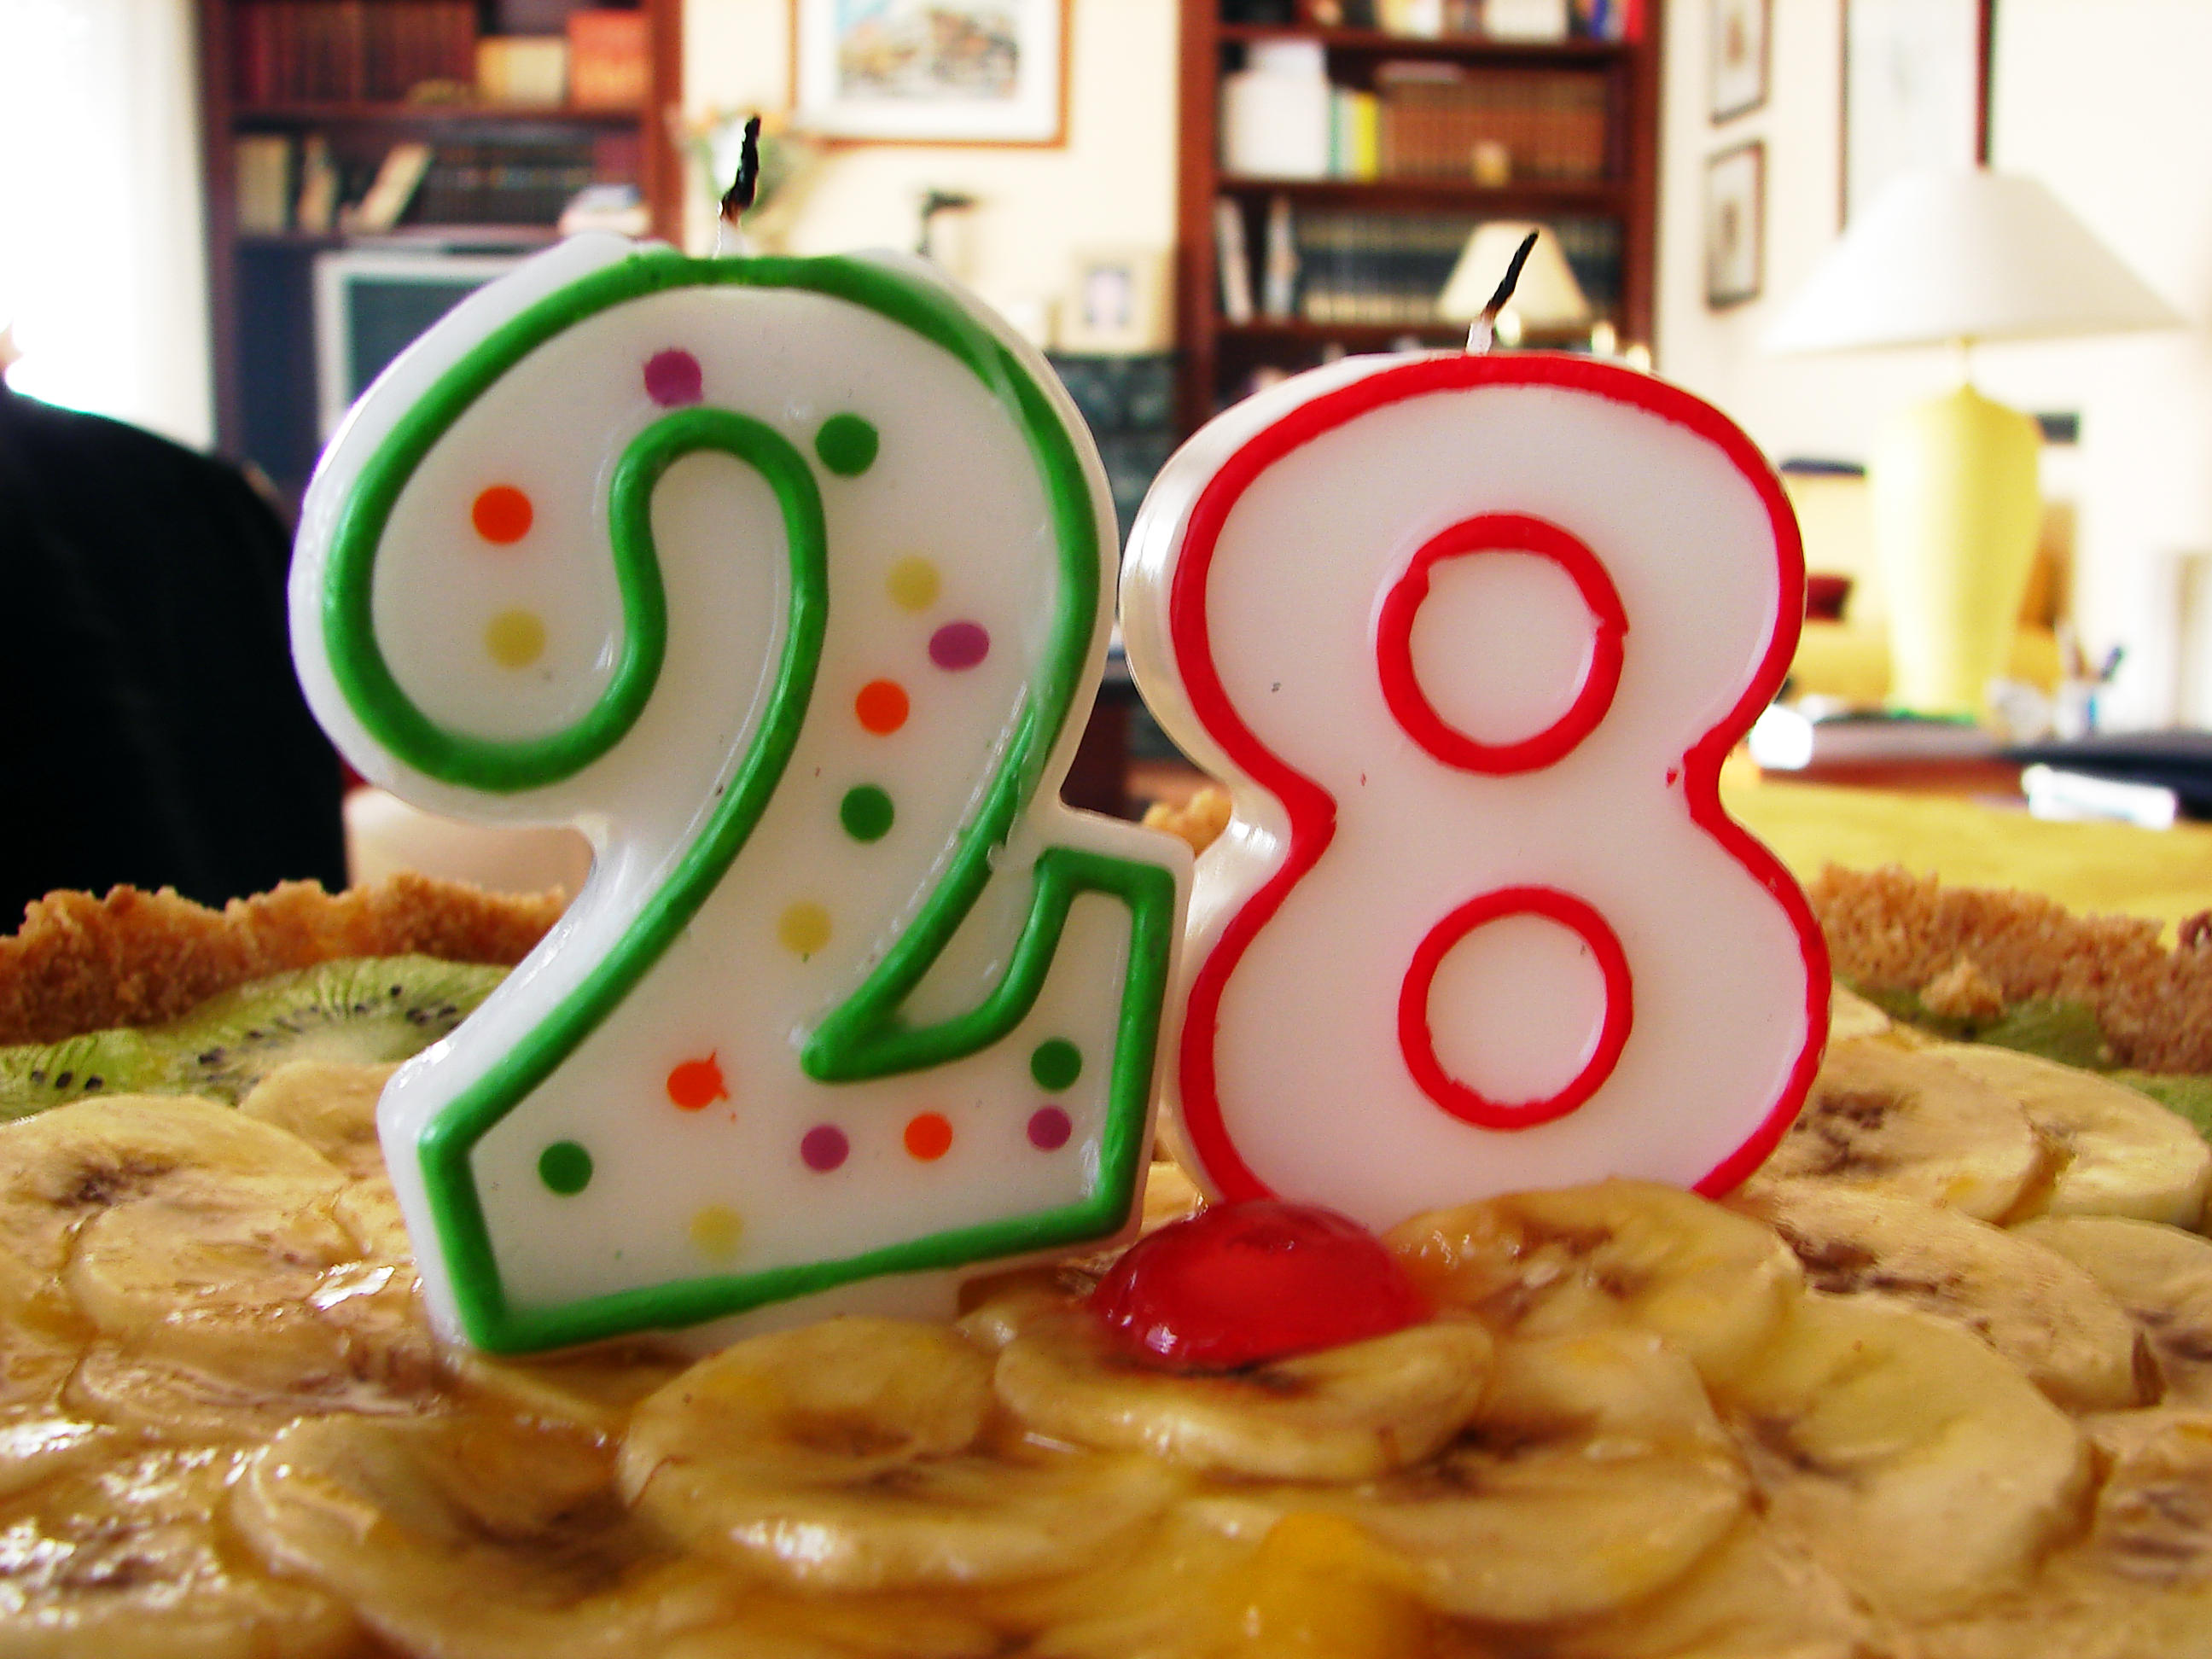 File:28 in candles.jpg